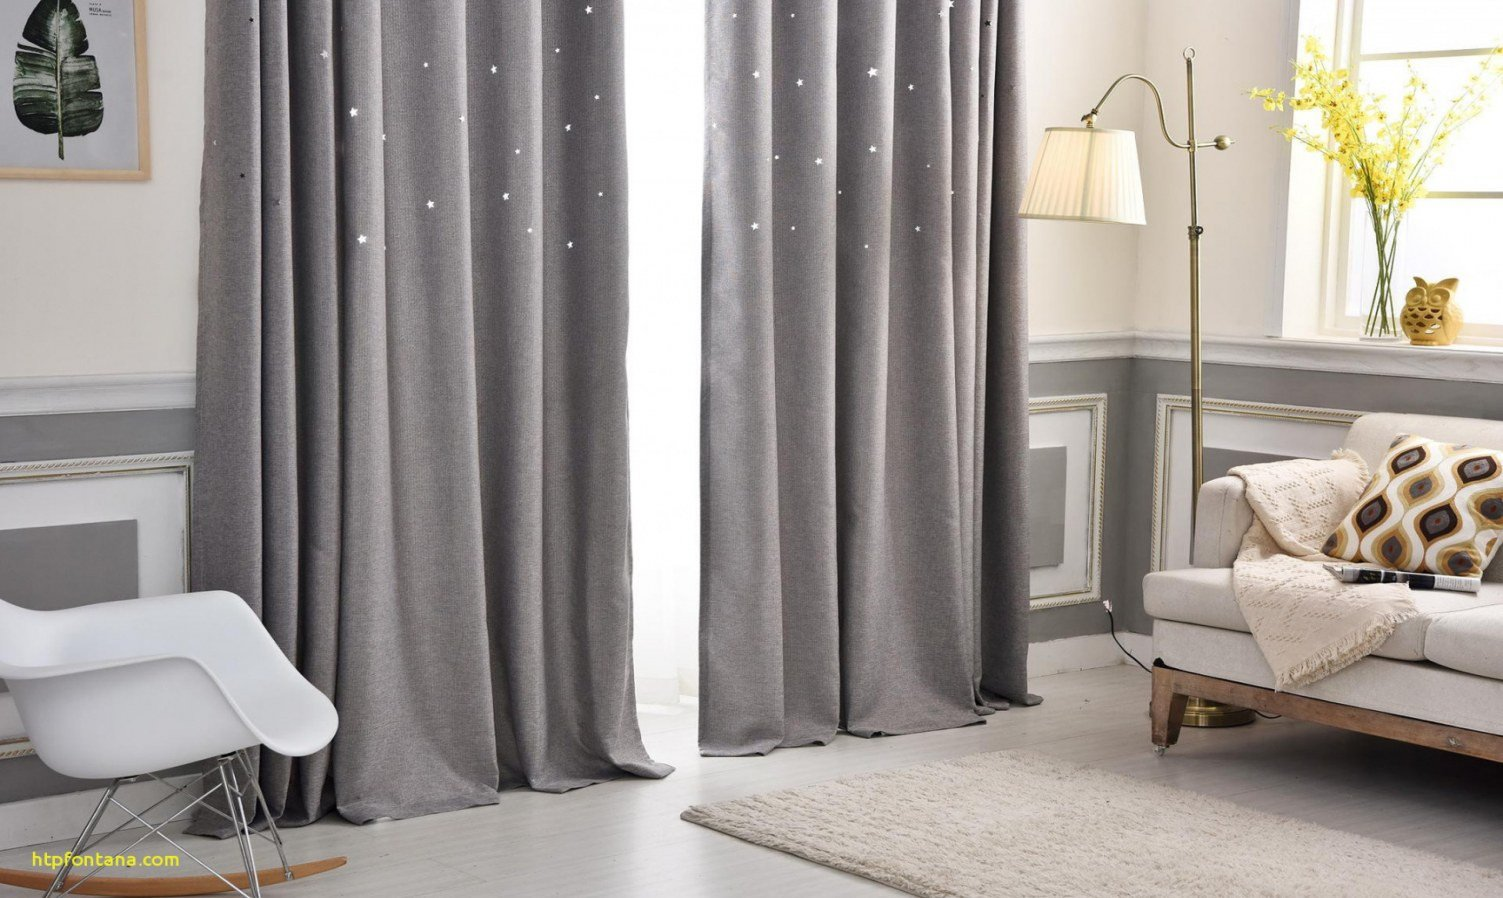 Beautiful Curtains for Bedroom Inspirational Modern Style Living Room 12 Modern Curtains Designs Living